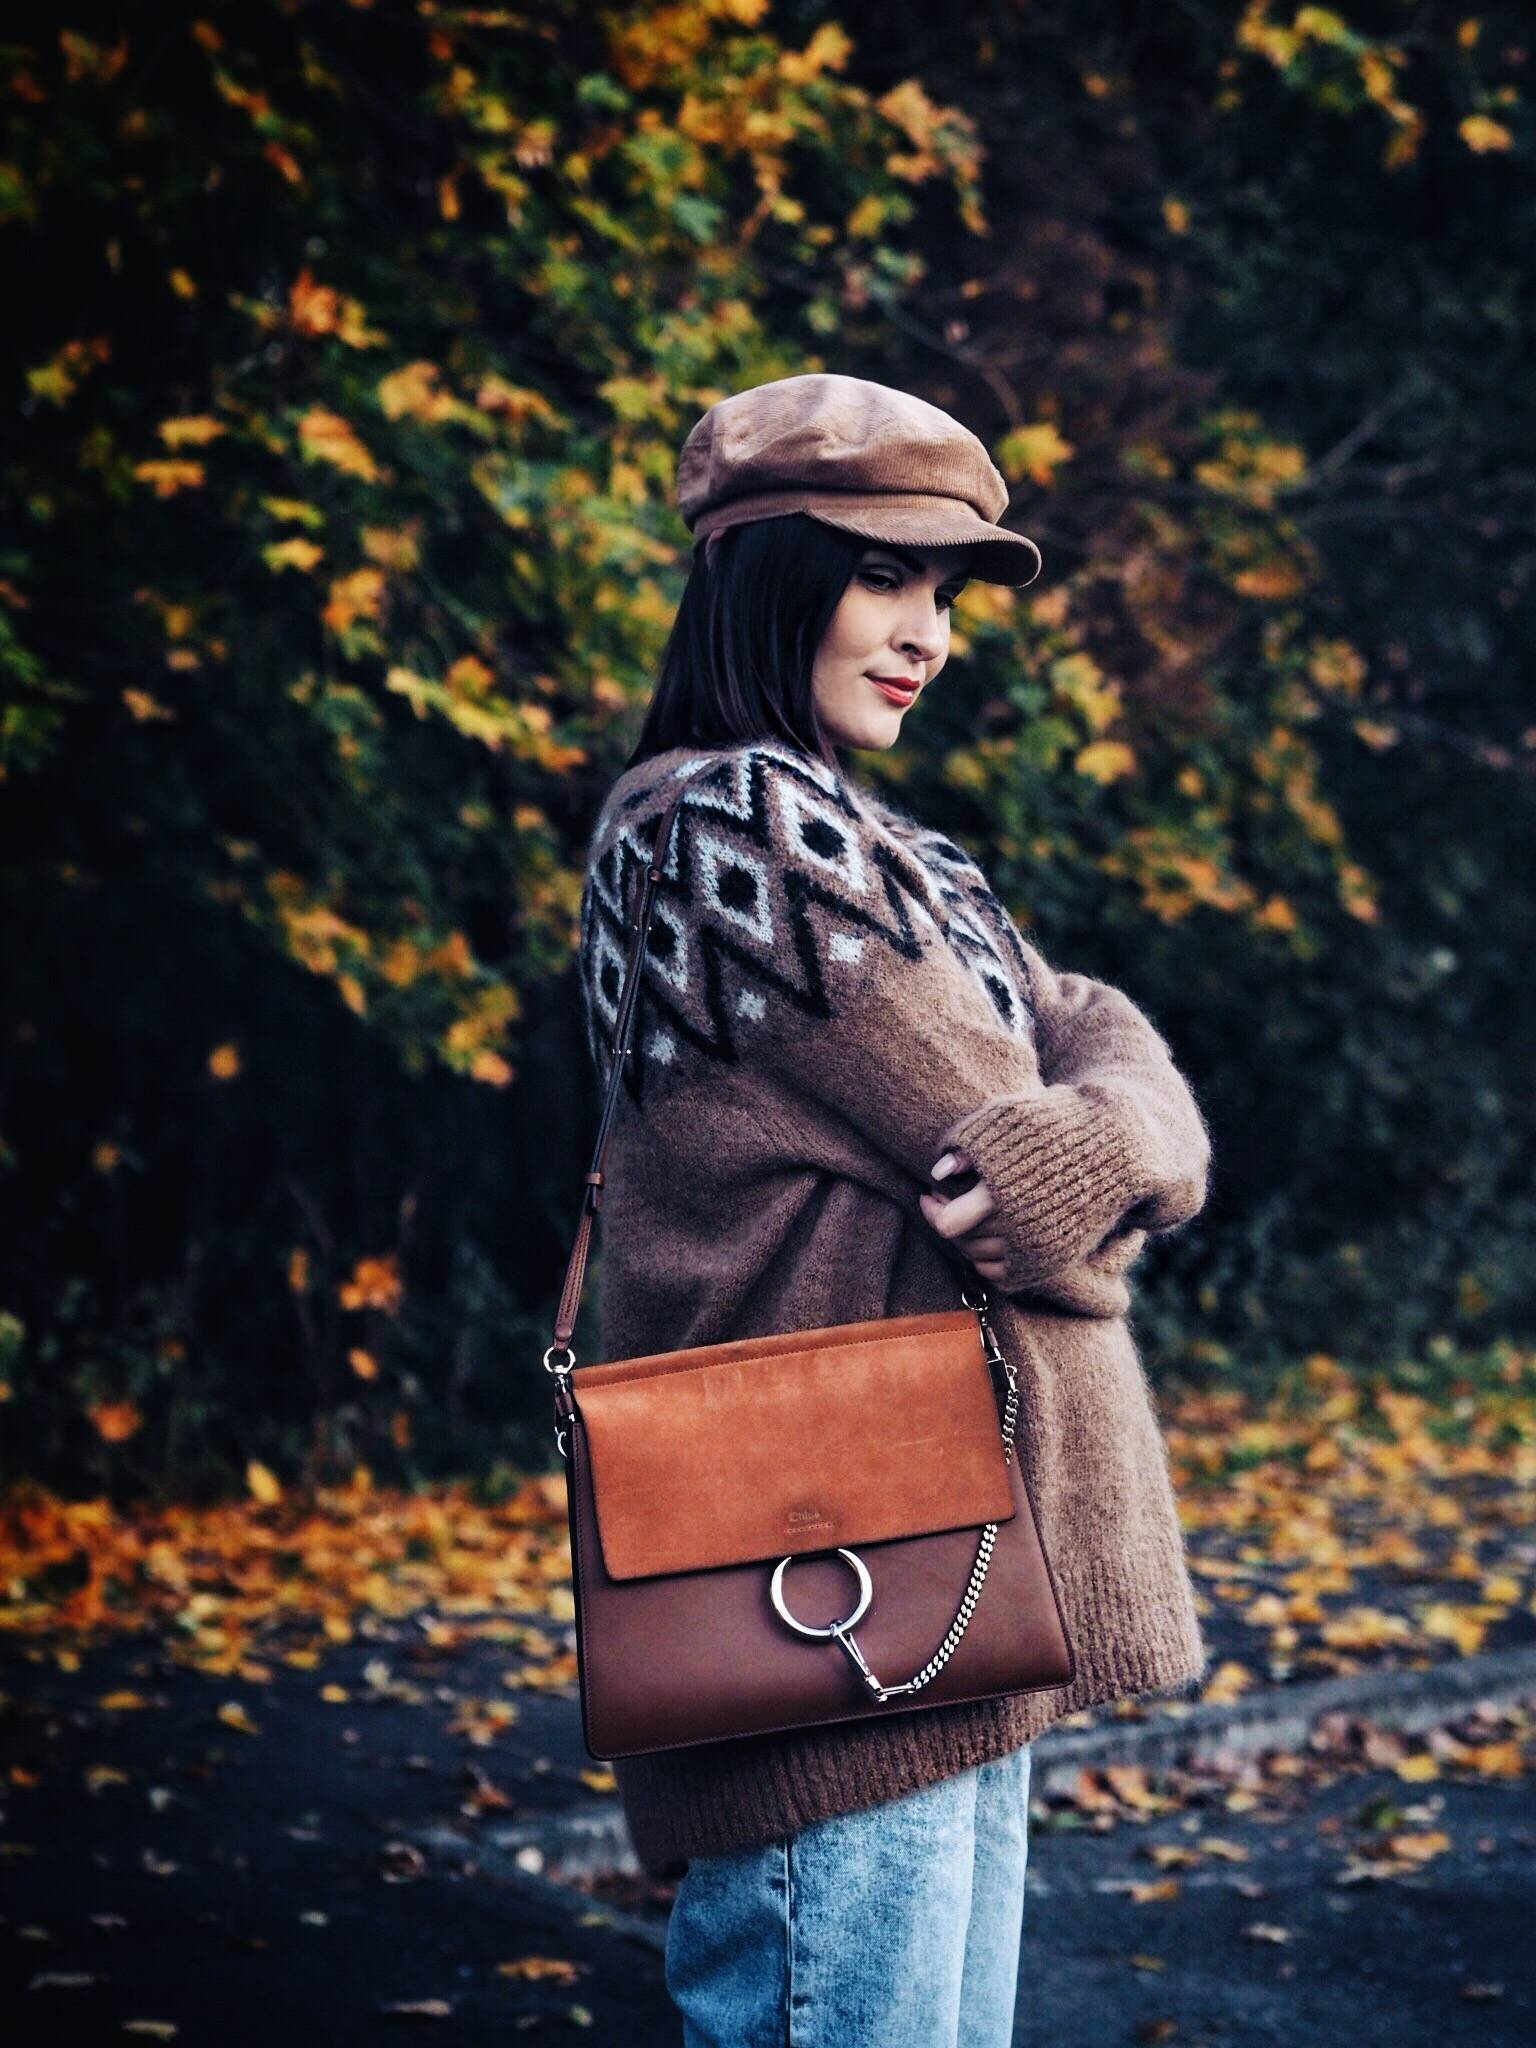 Autumn-pregnancy-style-street-style-corduroy-and-cosy-knit-UK-fashion-blogger-Glasgow-LAFOTKA